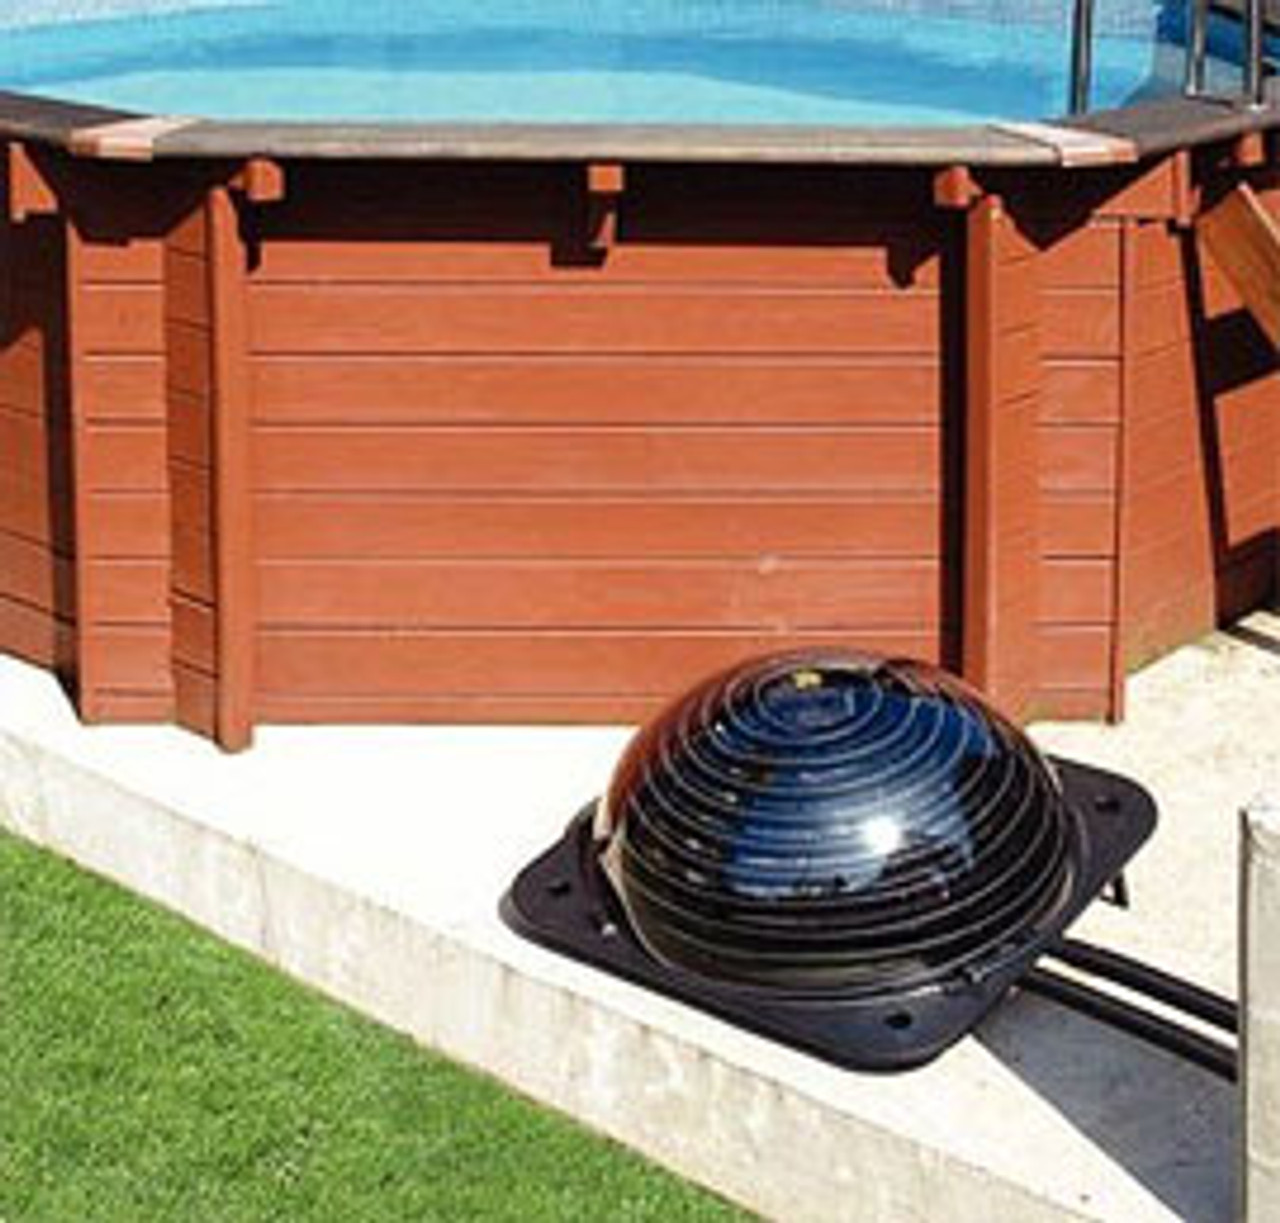 An installation example of the Swimming Pool Solar Heating Pod Plus.